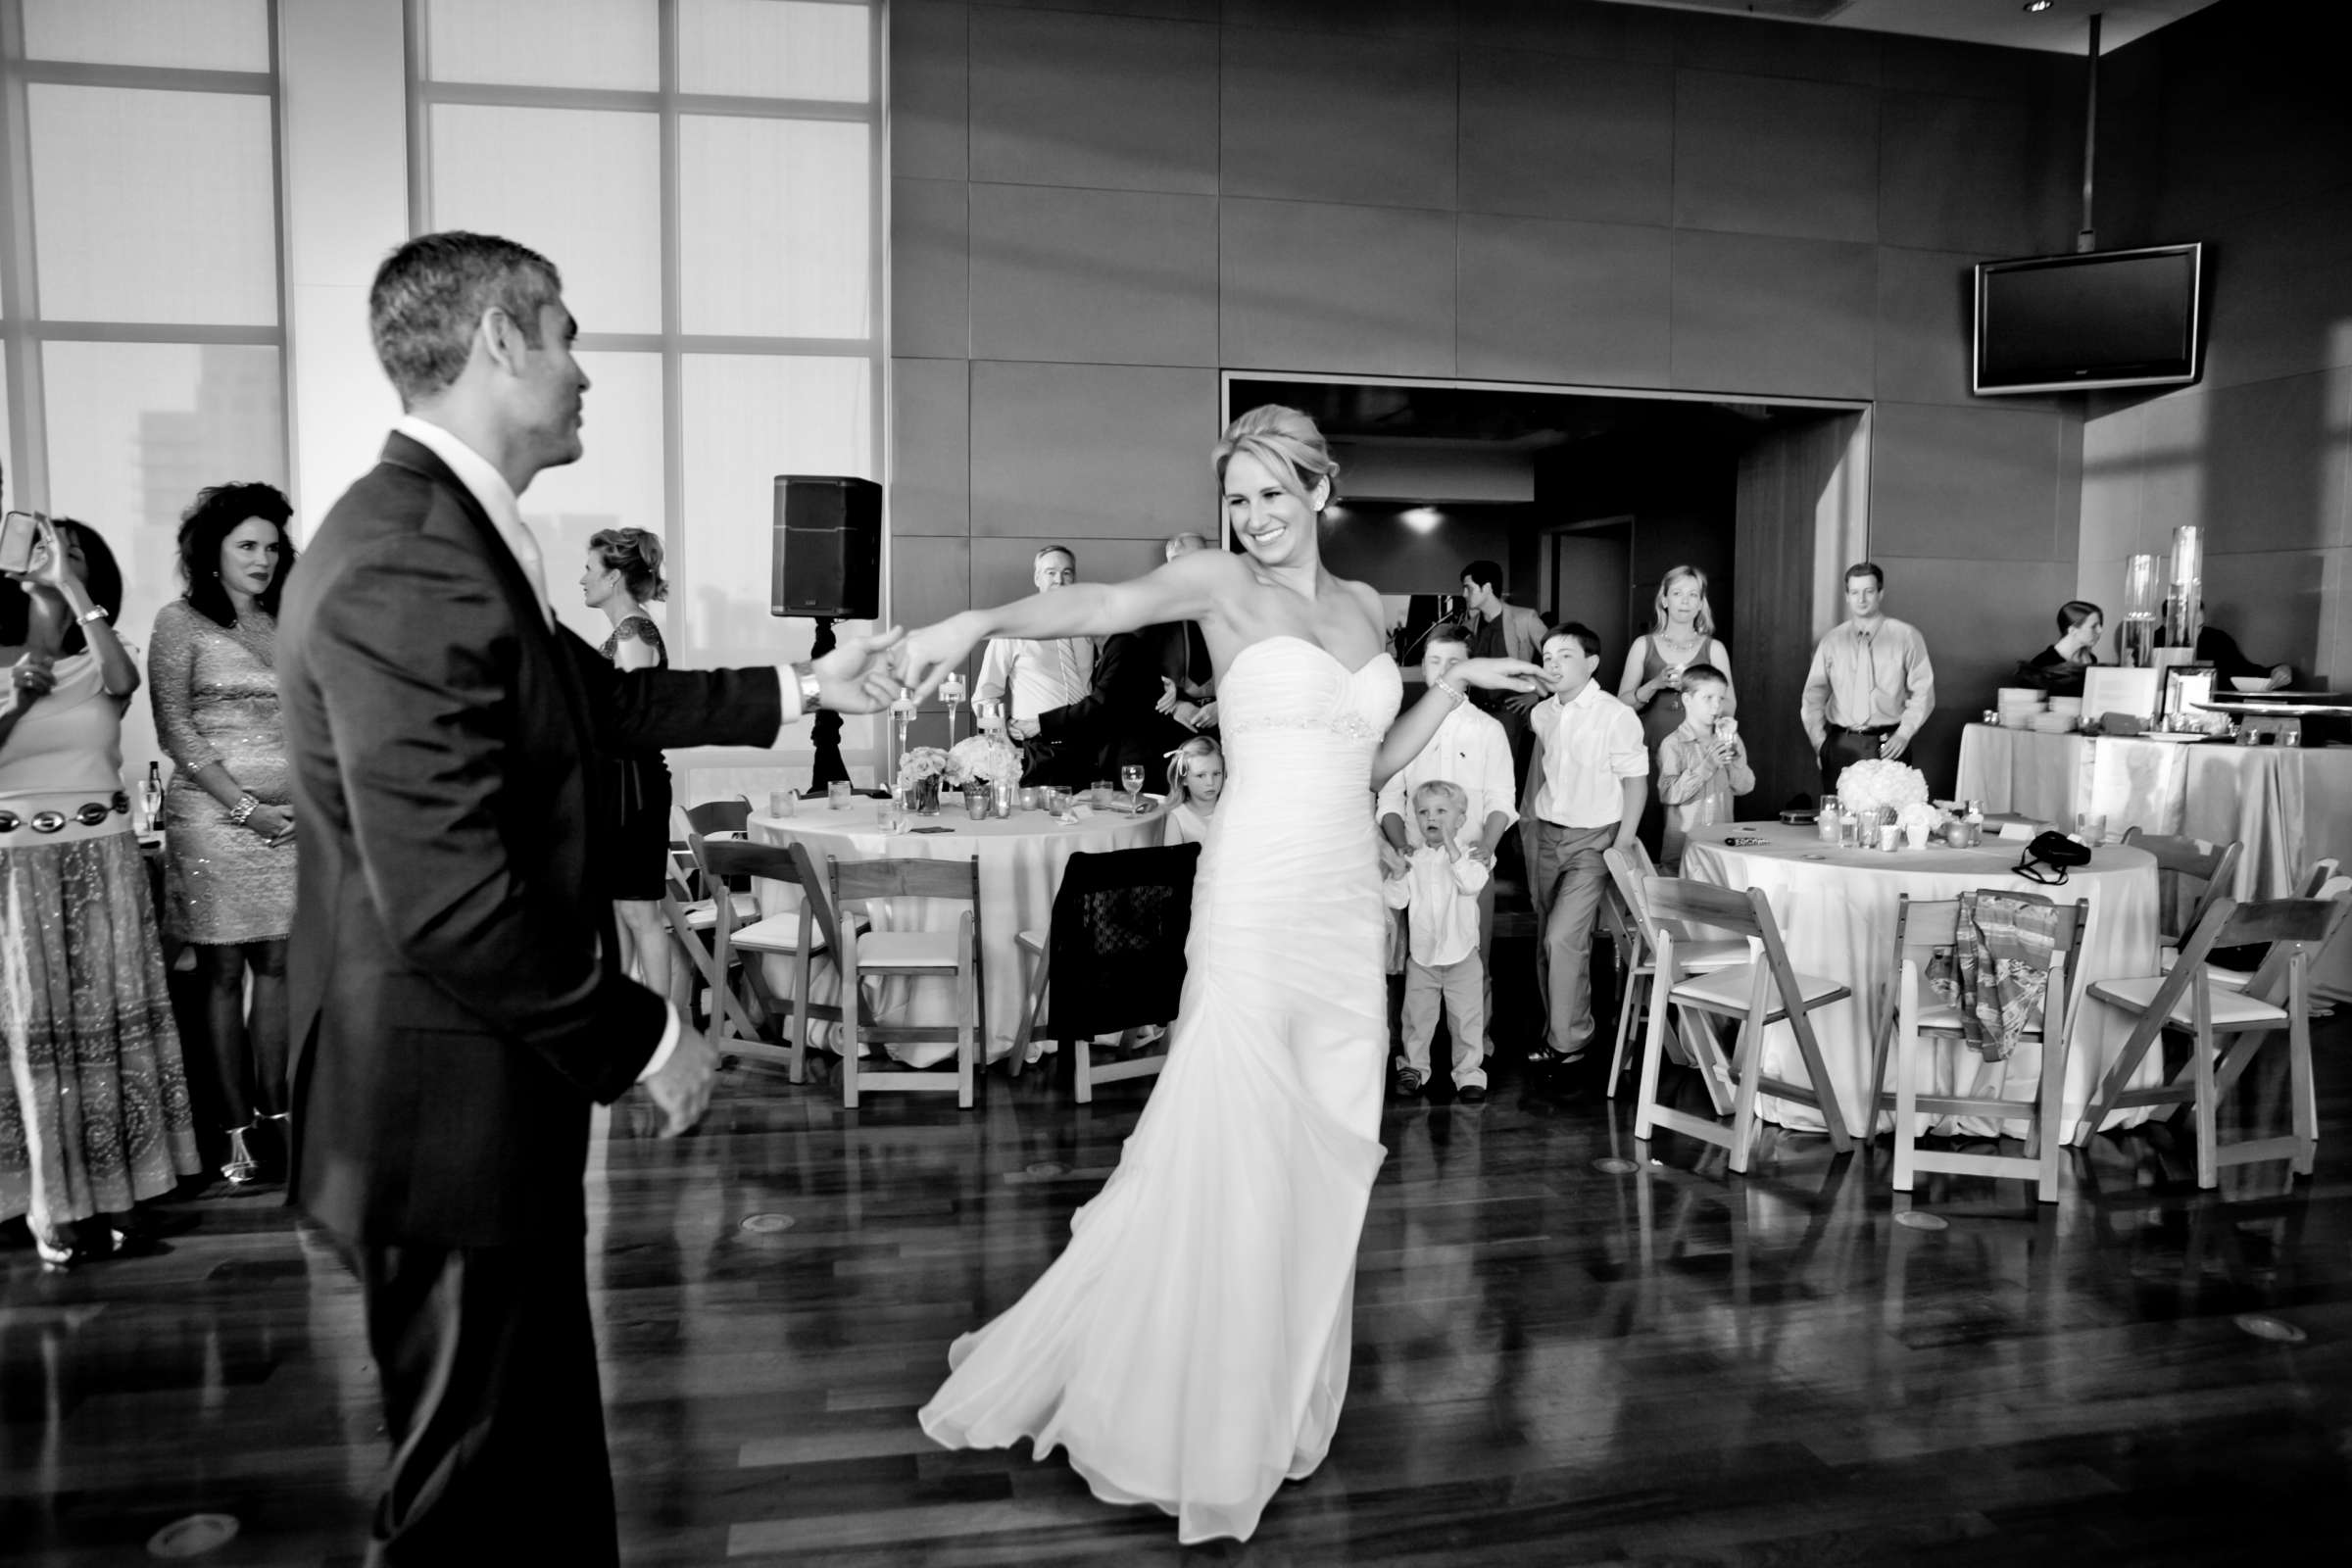 Ultimate Skybox Wedding, Chelsea and Frank Wedding Photo #52 by True Photography